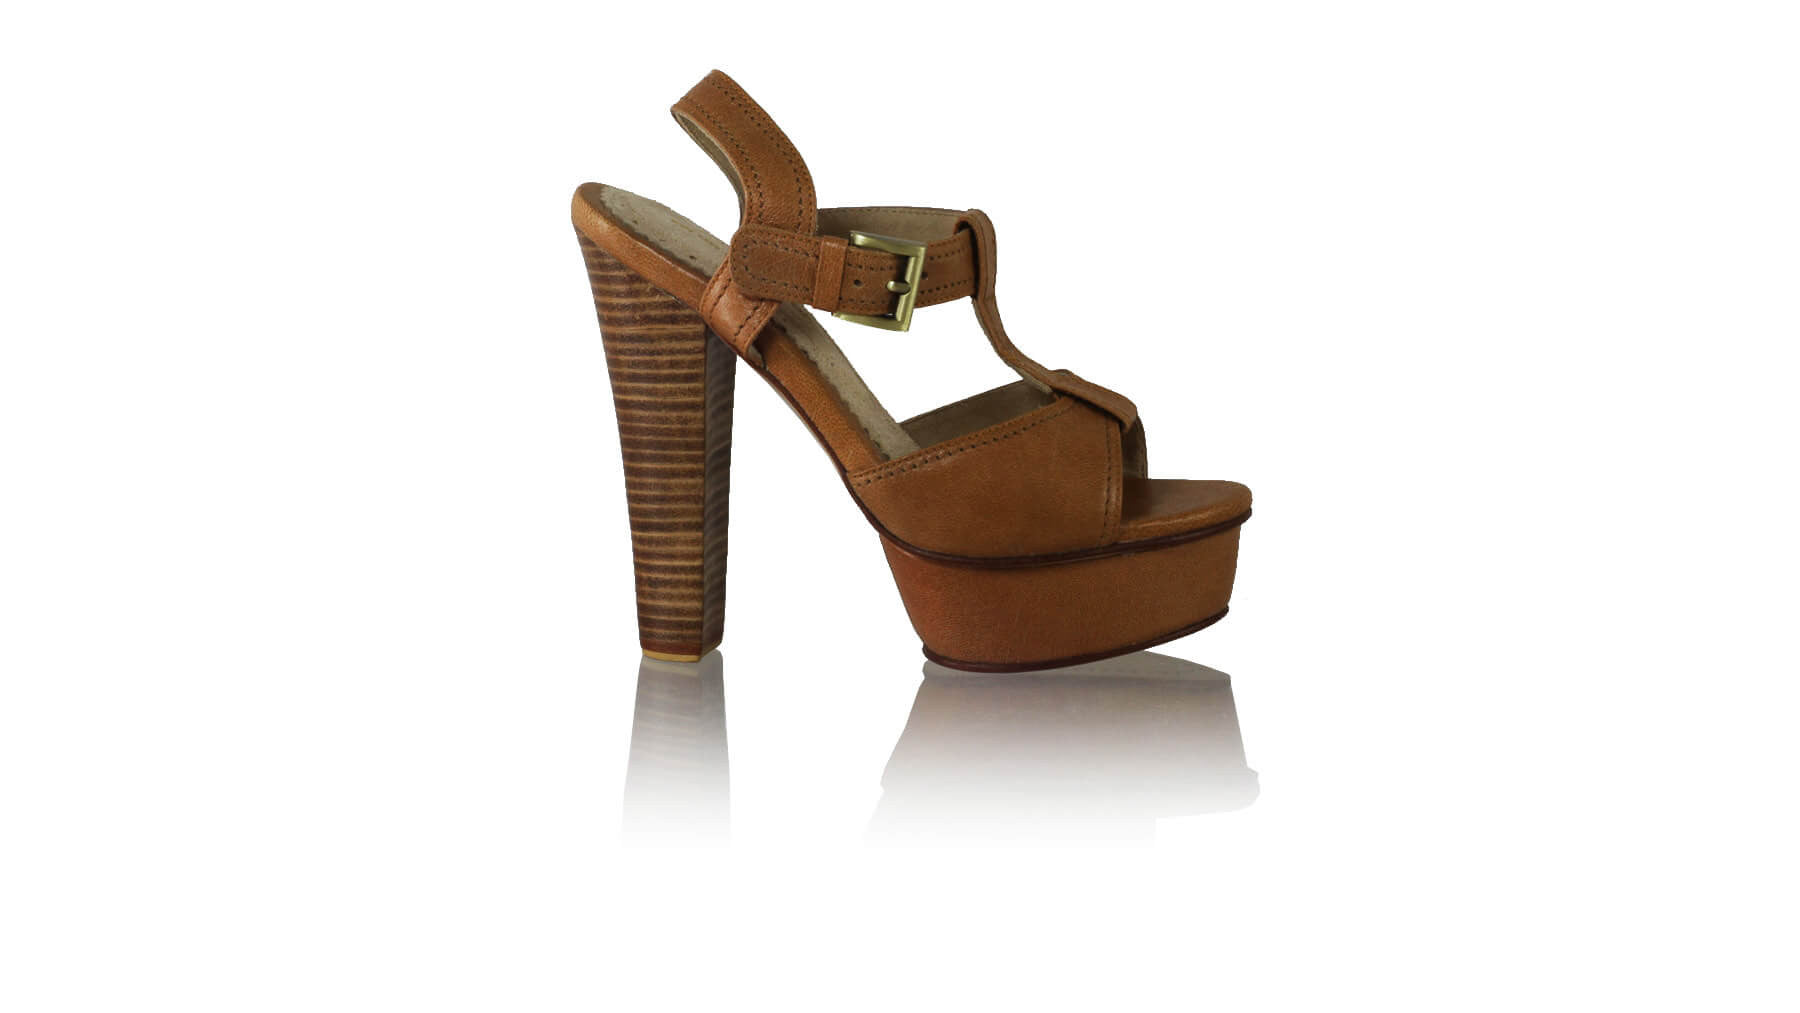 Leather-shoes-Baizura 140mm WH PF - Brown-sandals higheel-NILUH DJELANTIK-NILUH DJELANTIK